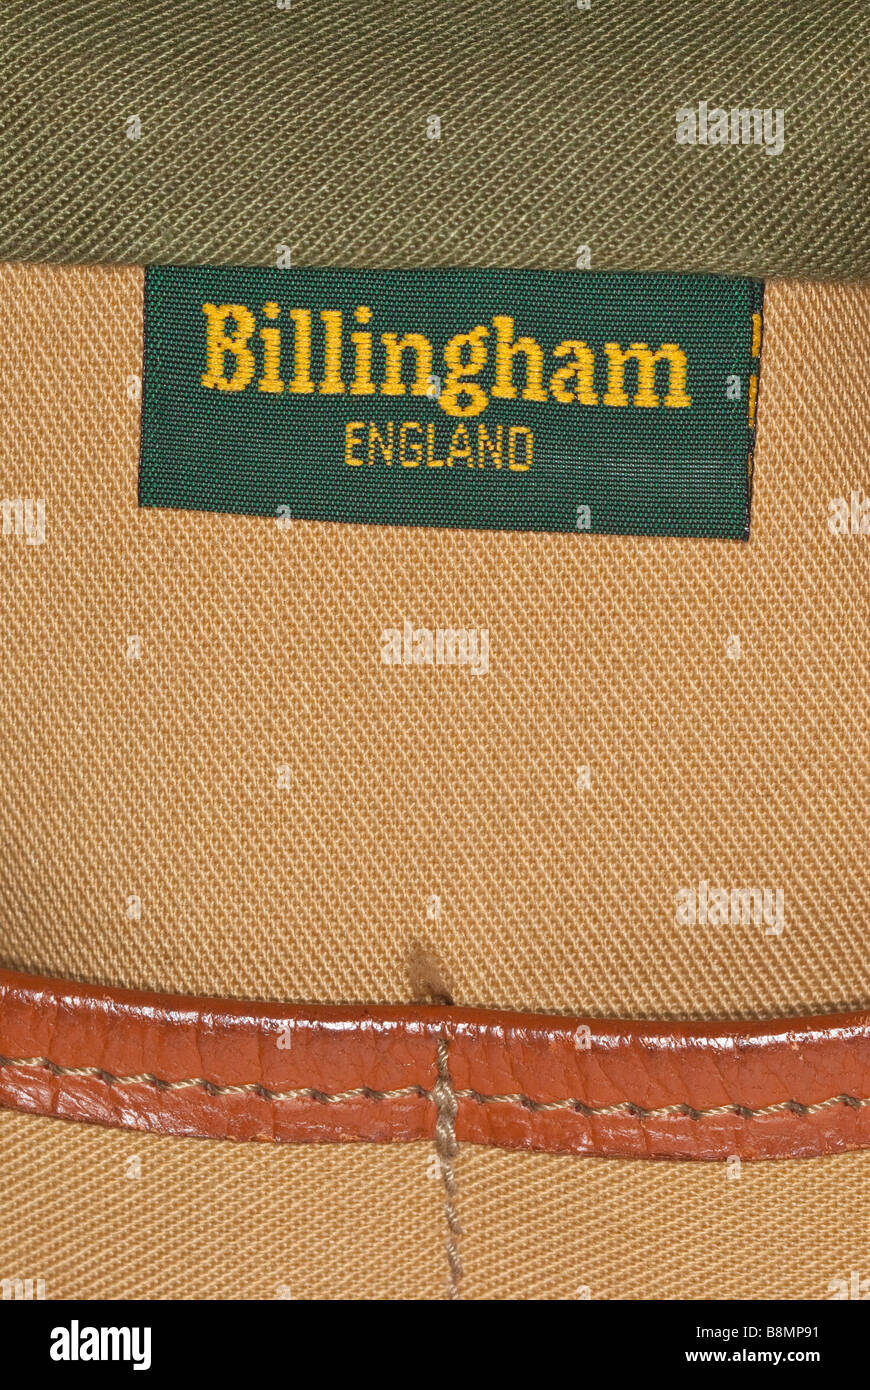 A close up of a Billingham camera photography bag made in England showing logo - Stock Image